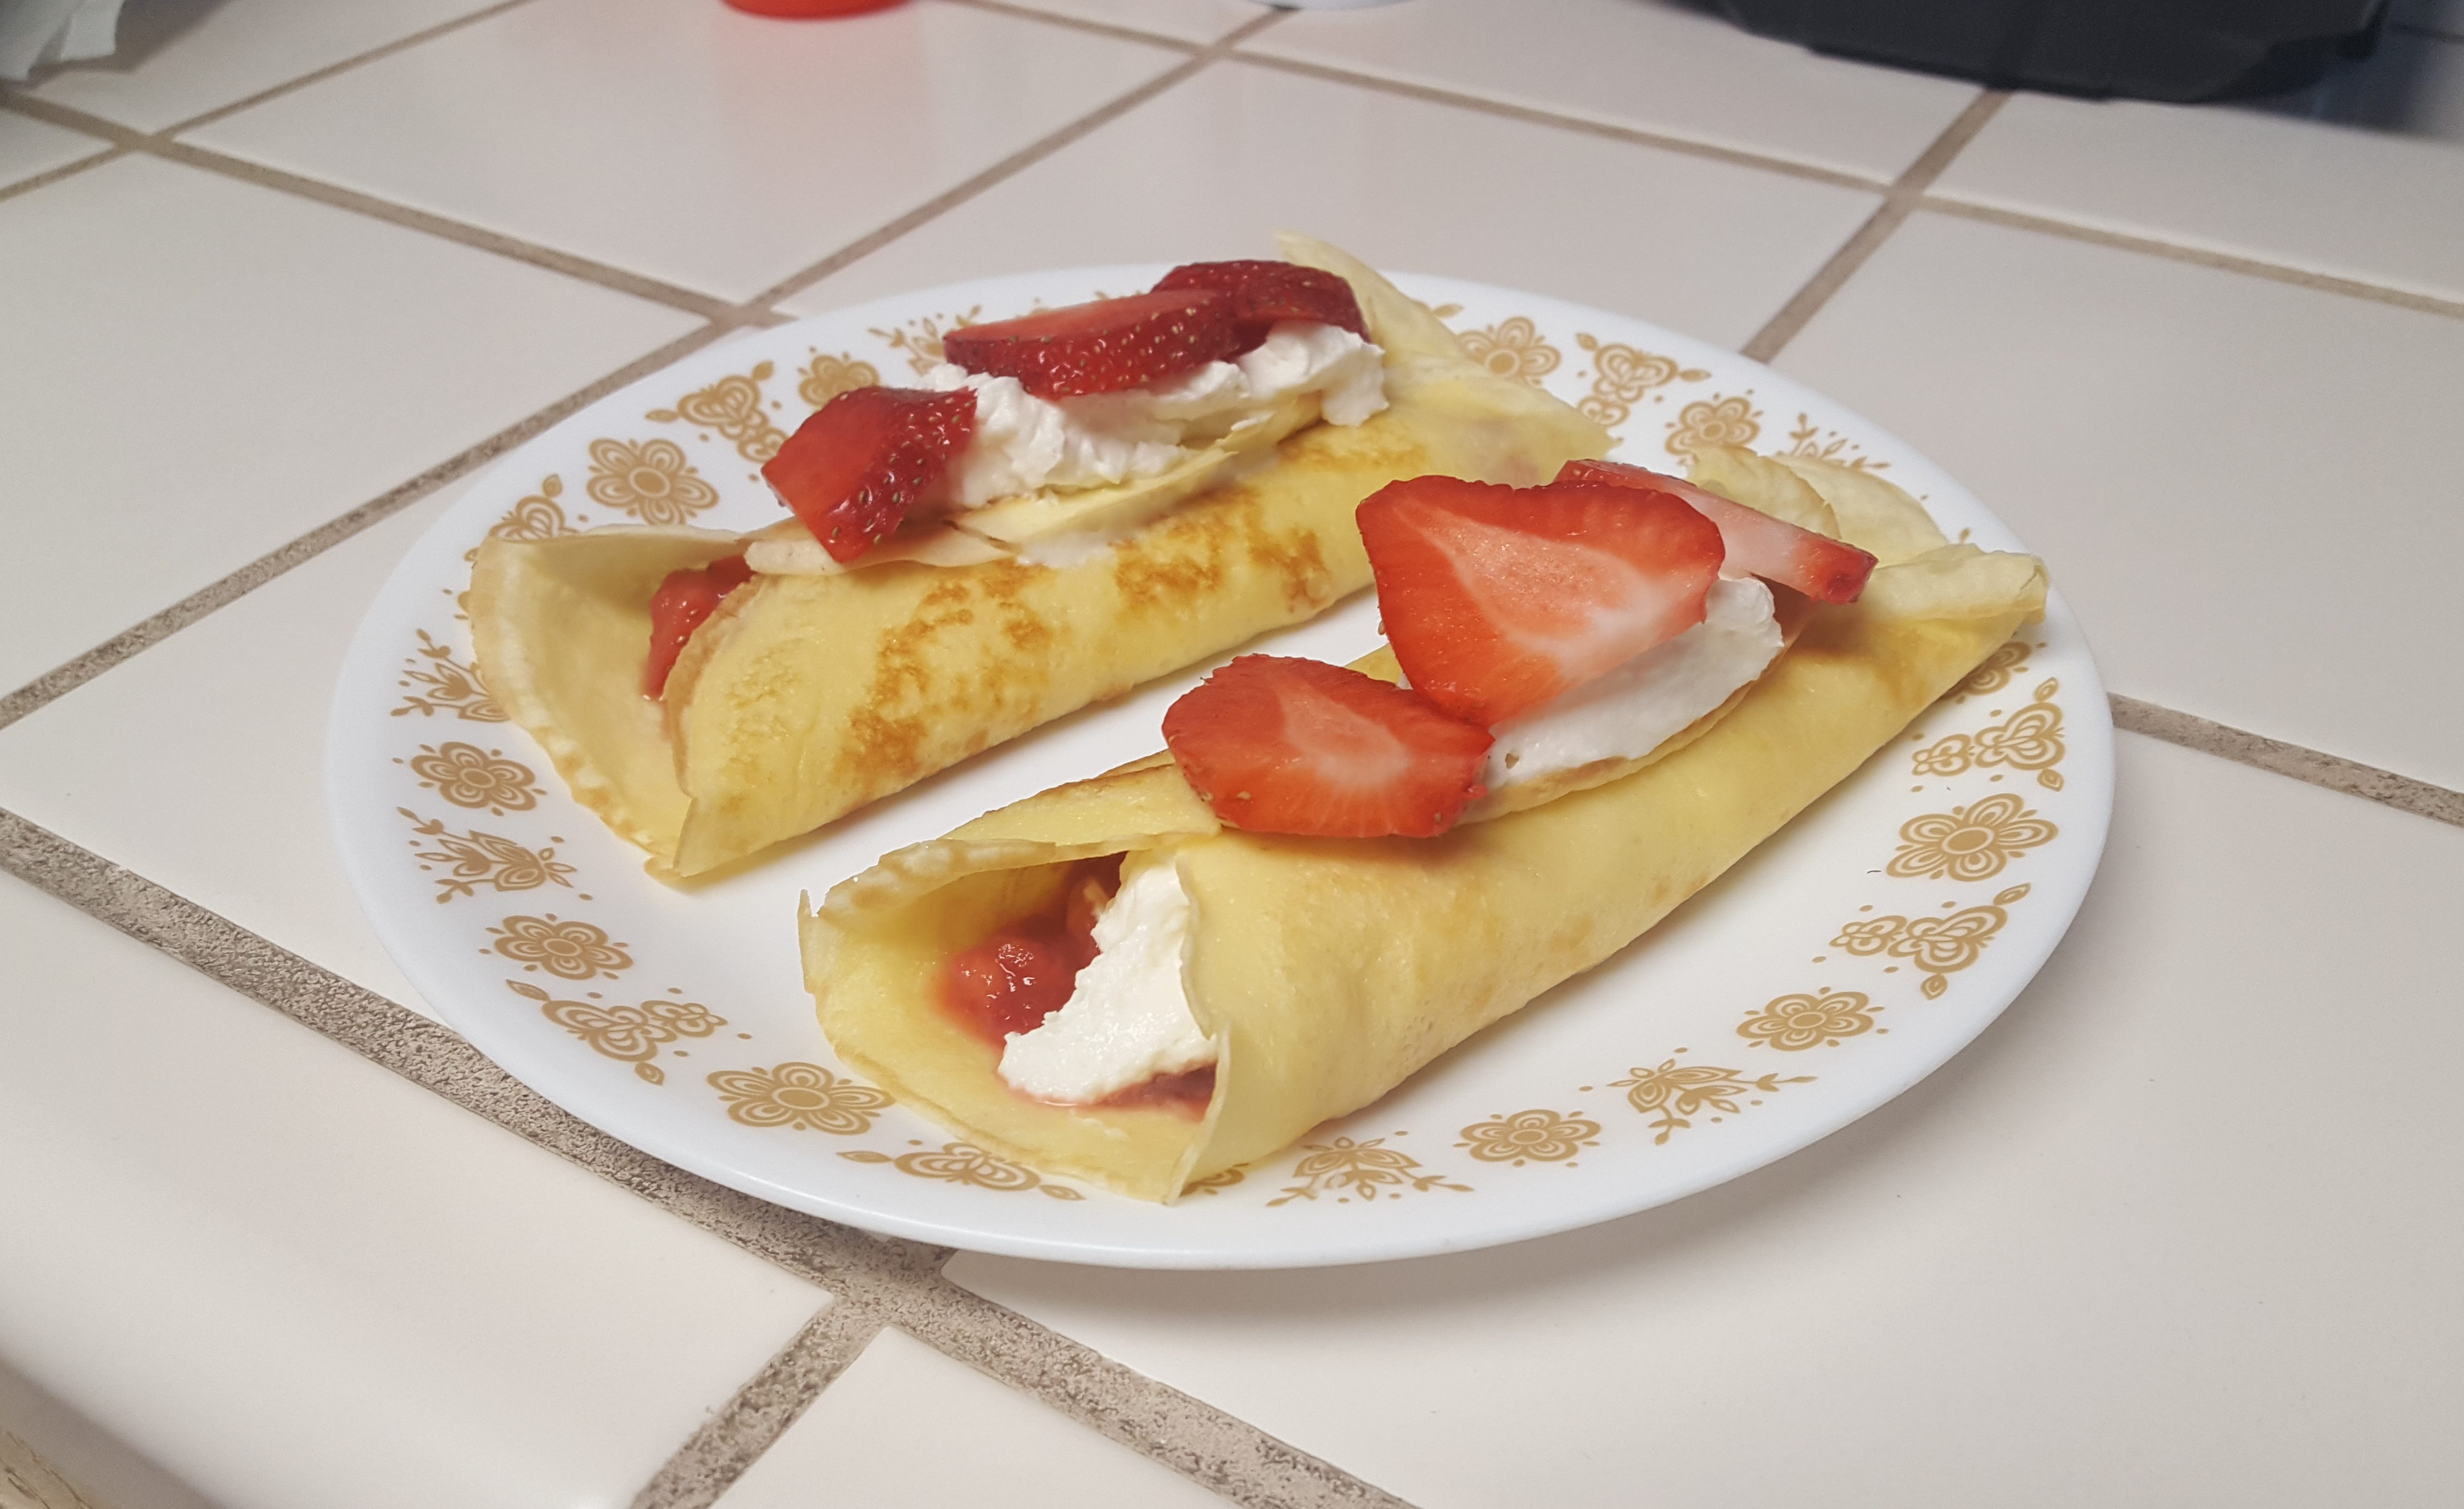 Strawberry and Creme Filled Crêpes